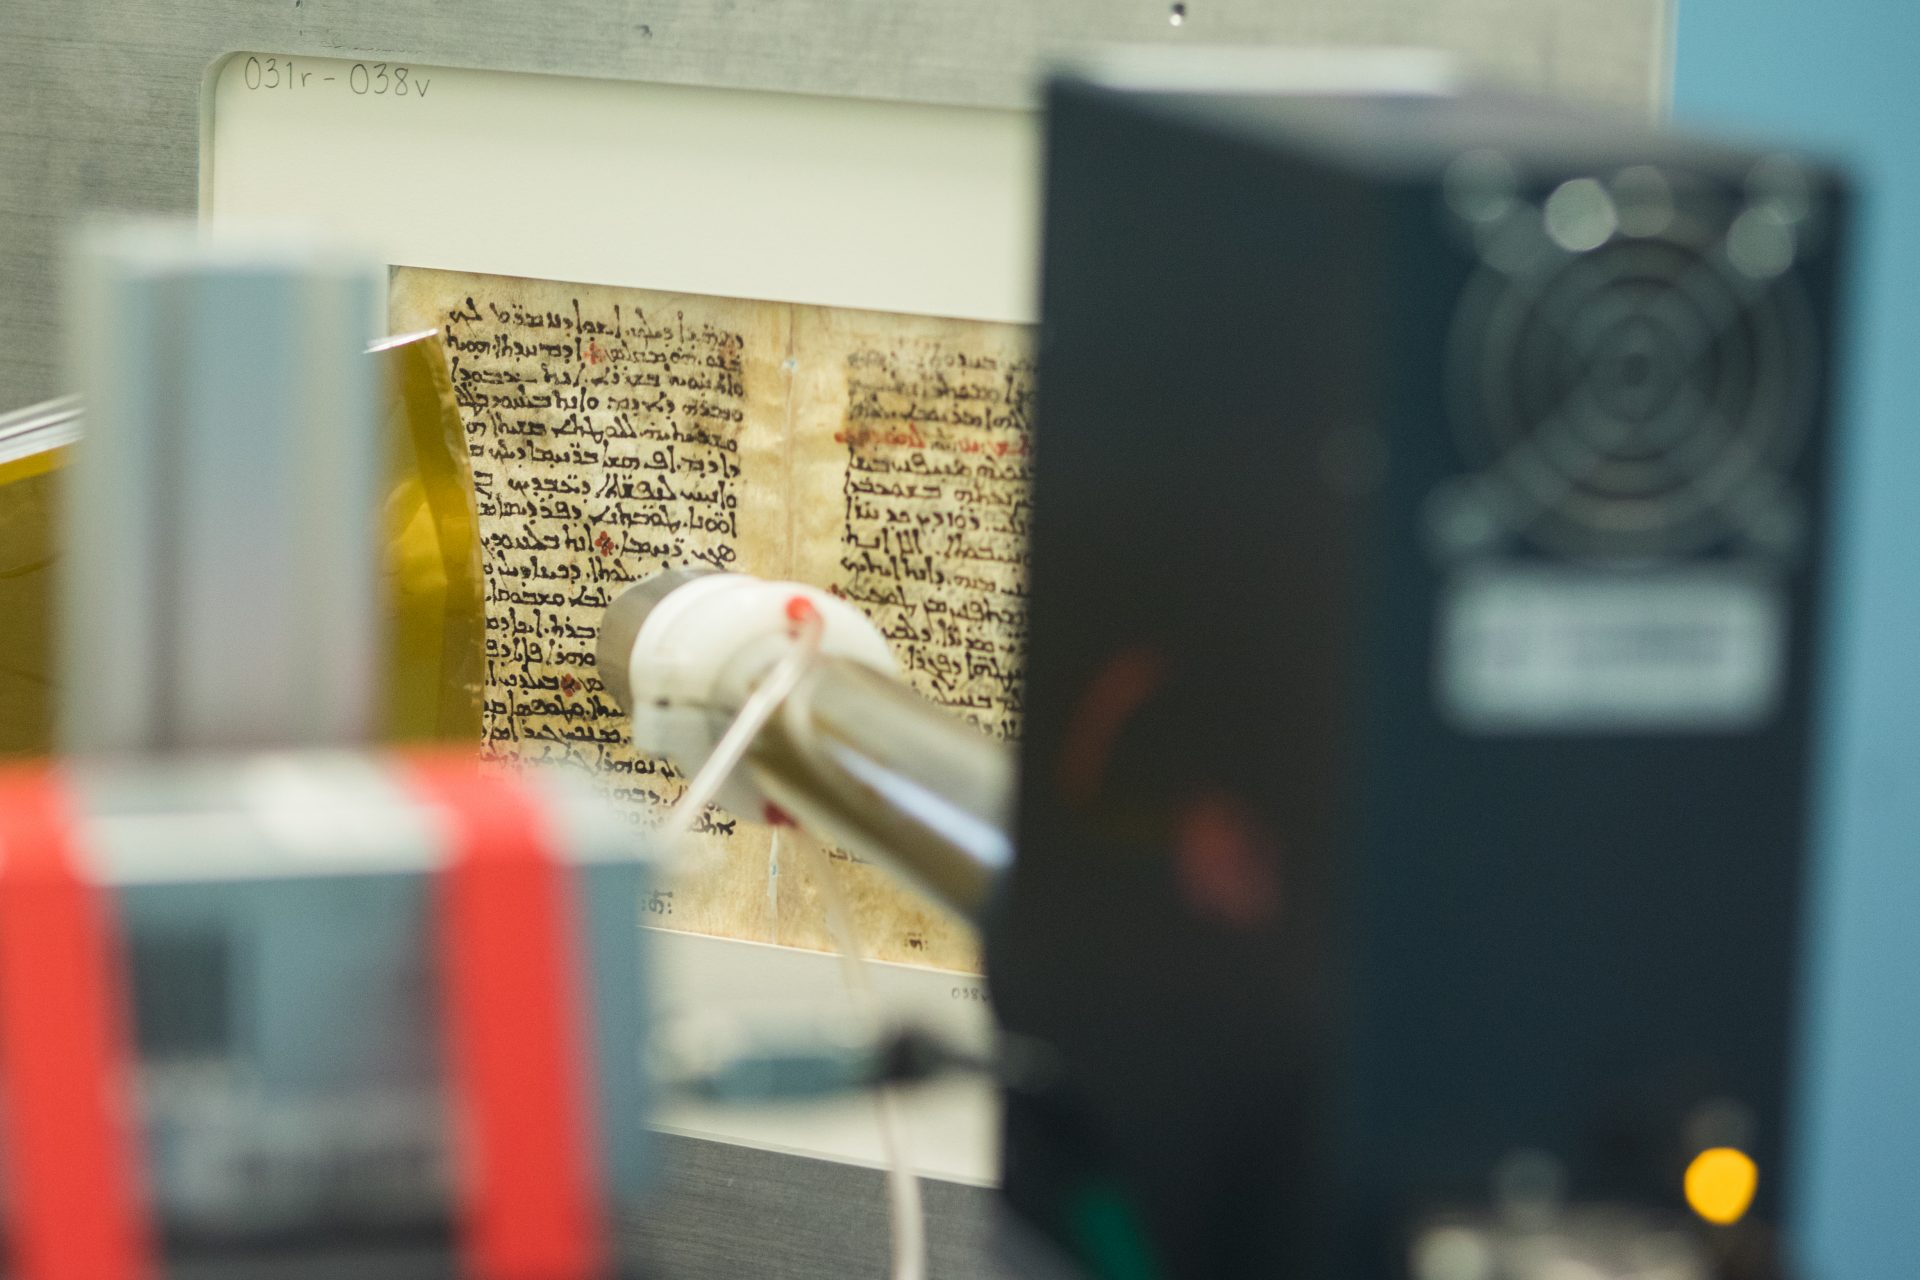 They illuminated the pages with visible, ultraviolet and infrared light to enhance different colors within the inks. While they could identify and read the underlying text on many pages, they still could not read it on others. Credit: Stanford University